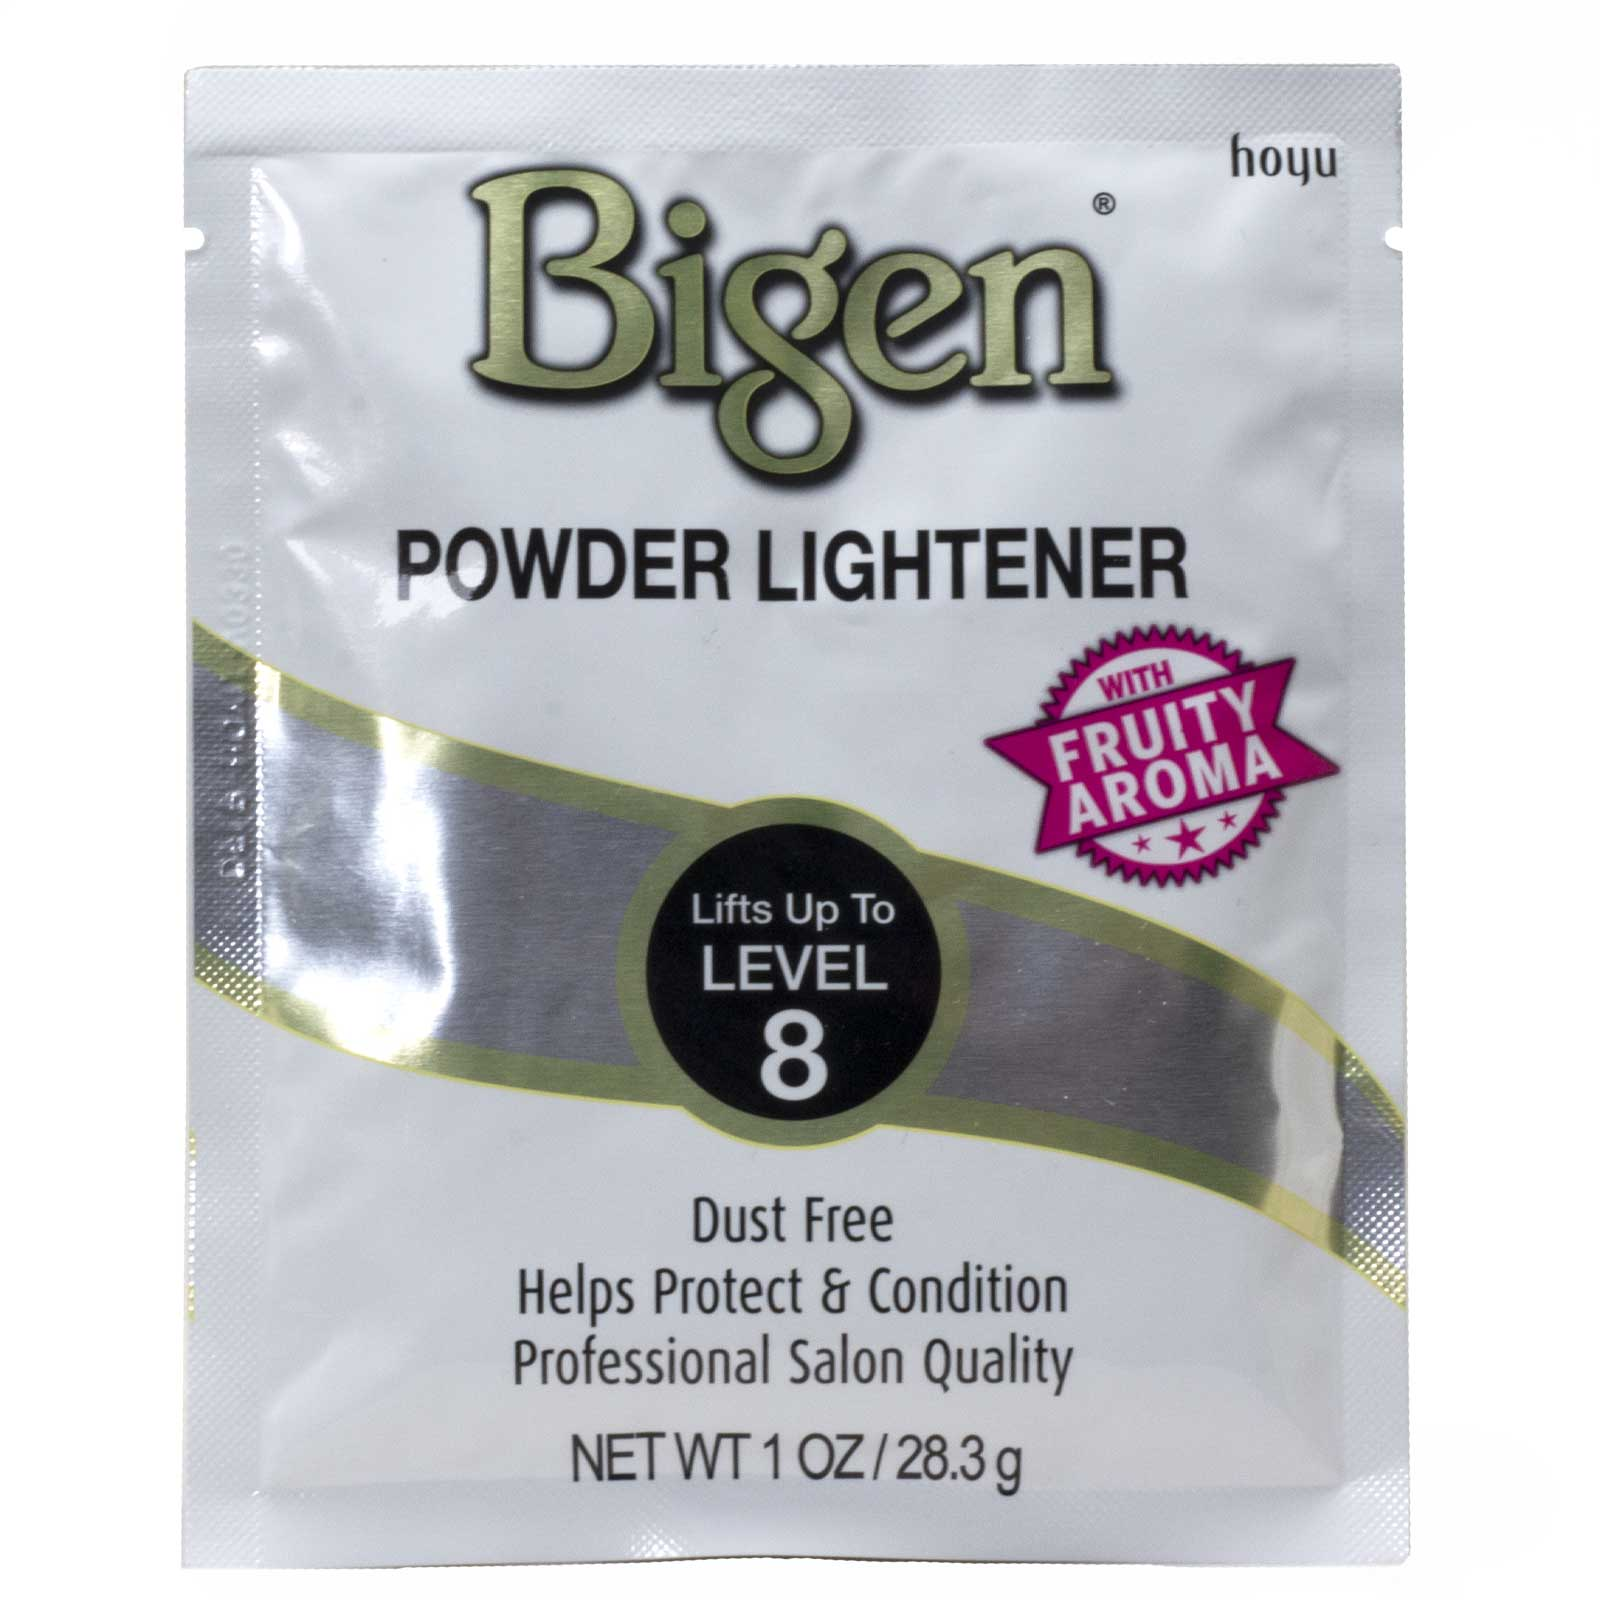 03006-Powder Lightener